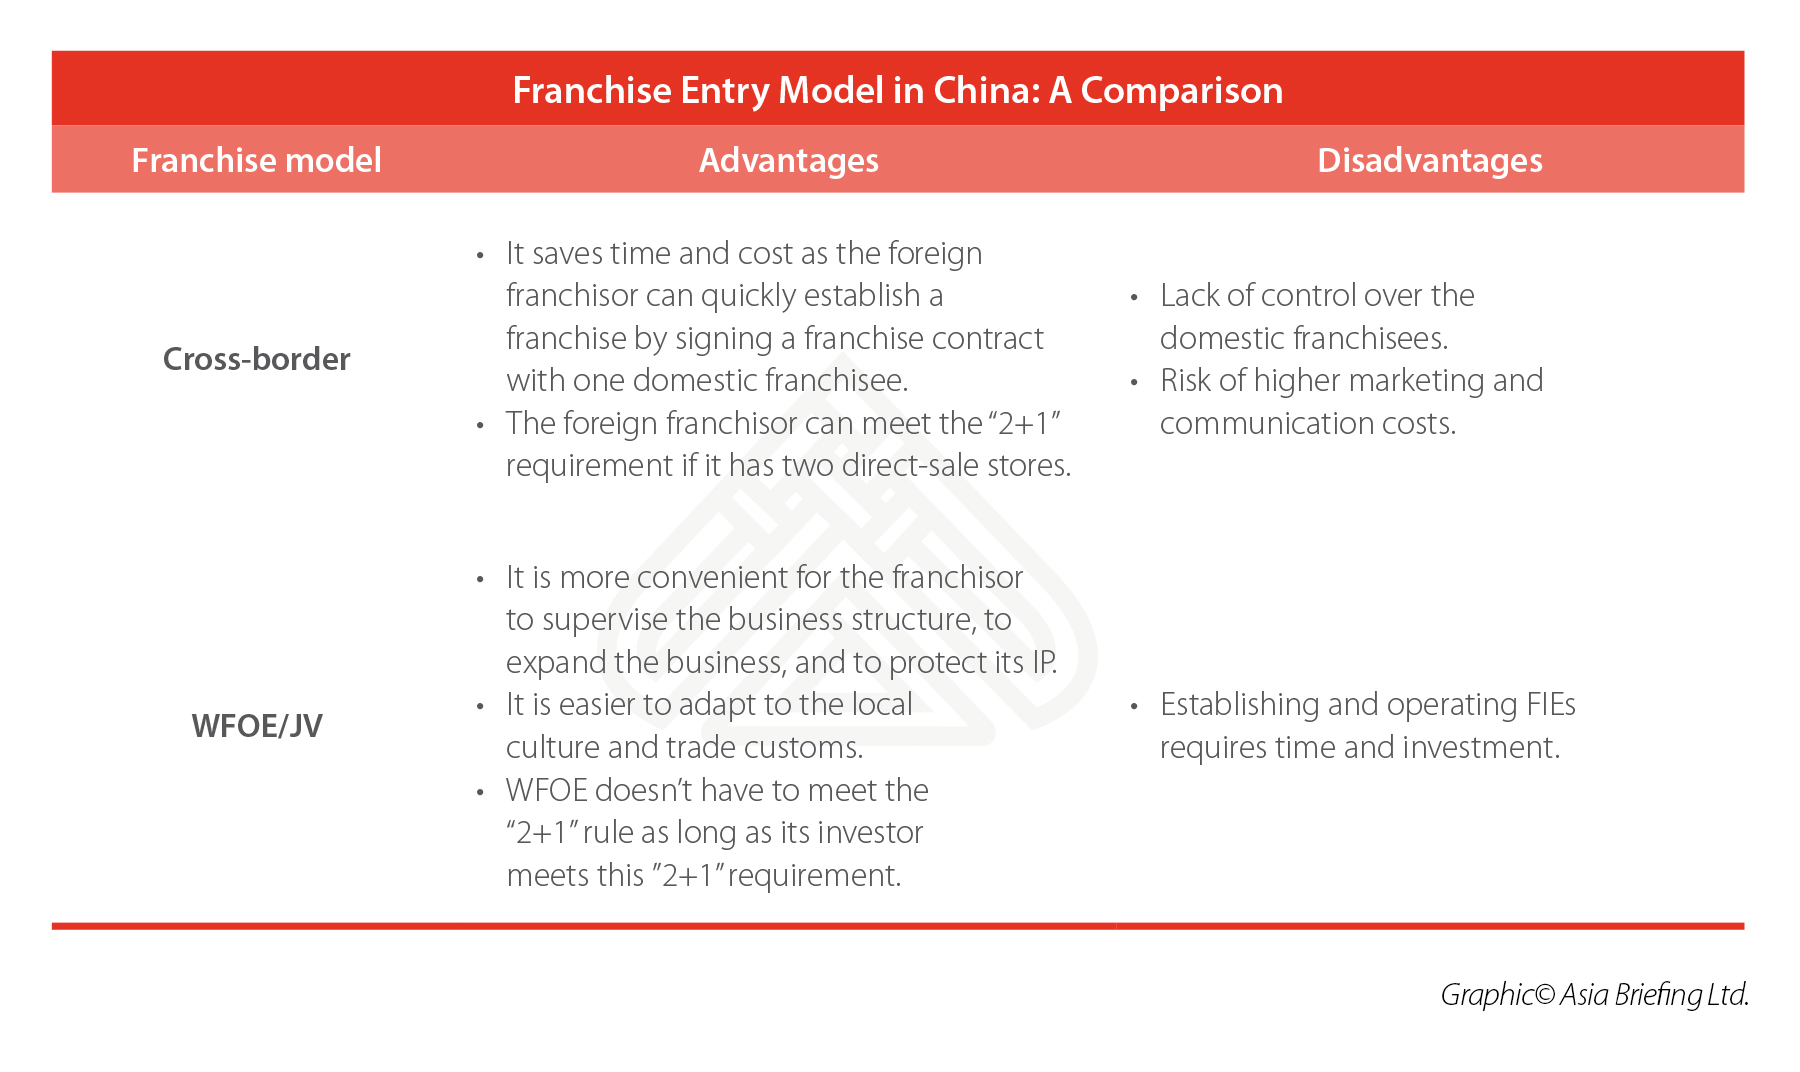 Franchise entry model in China